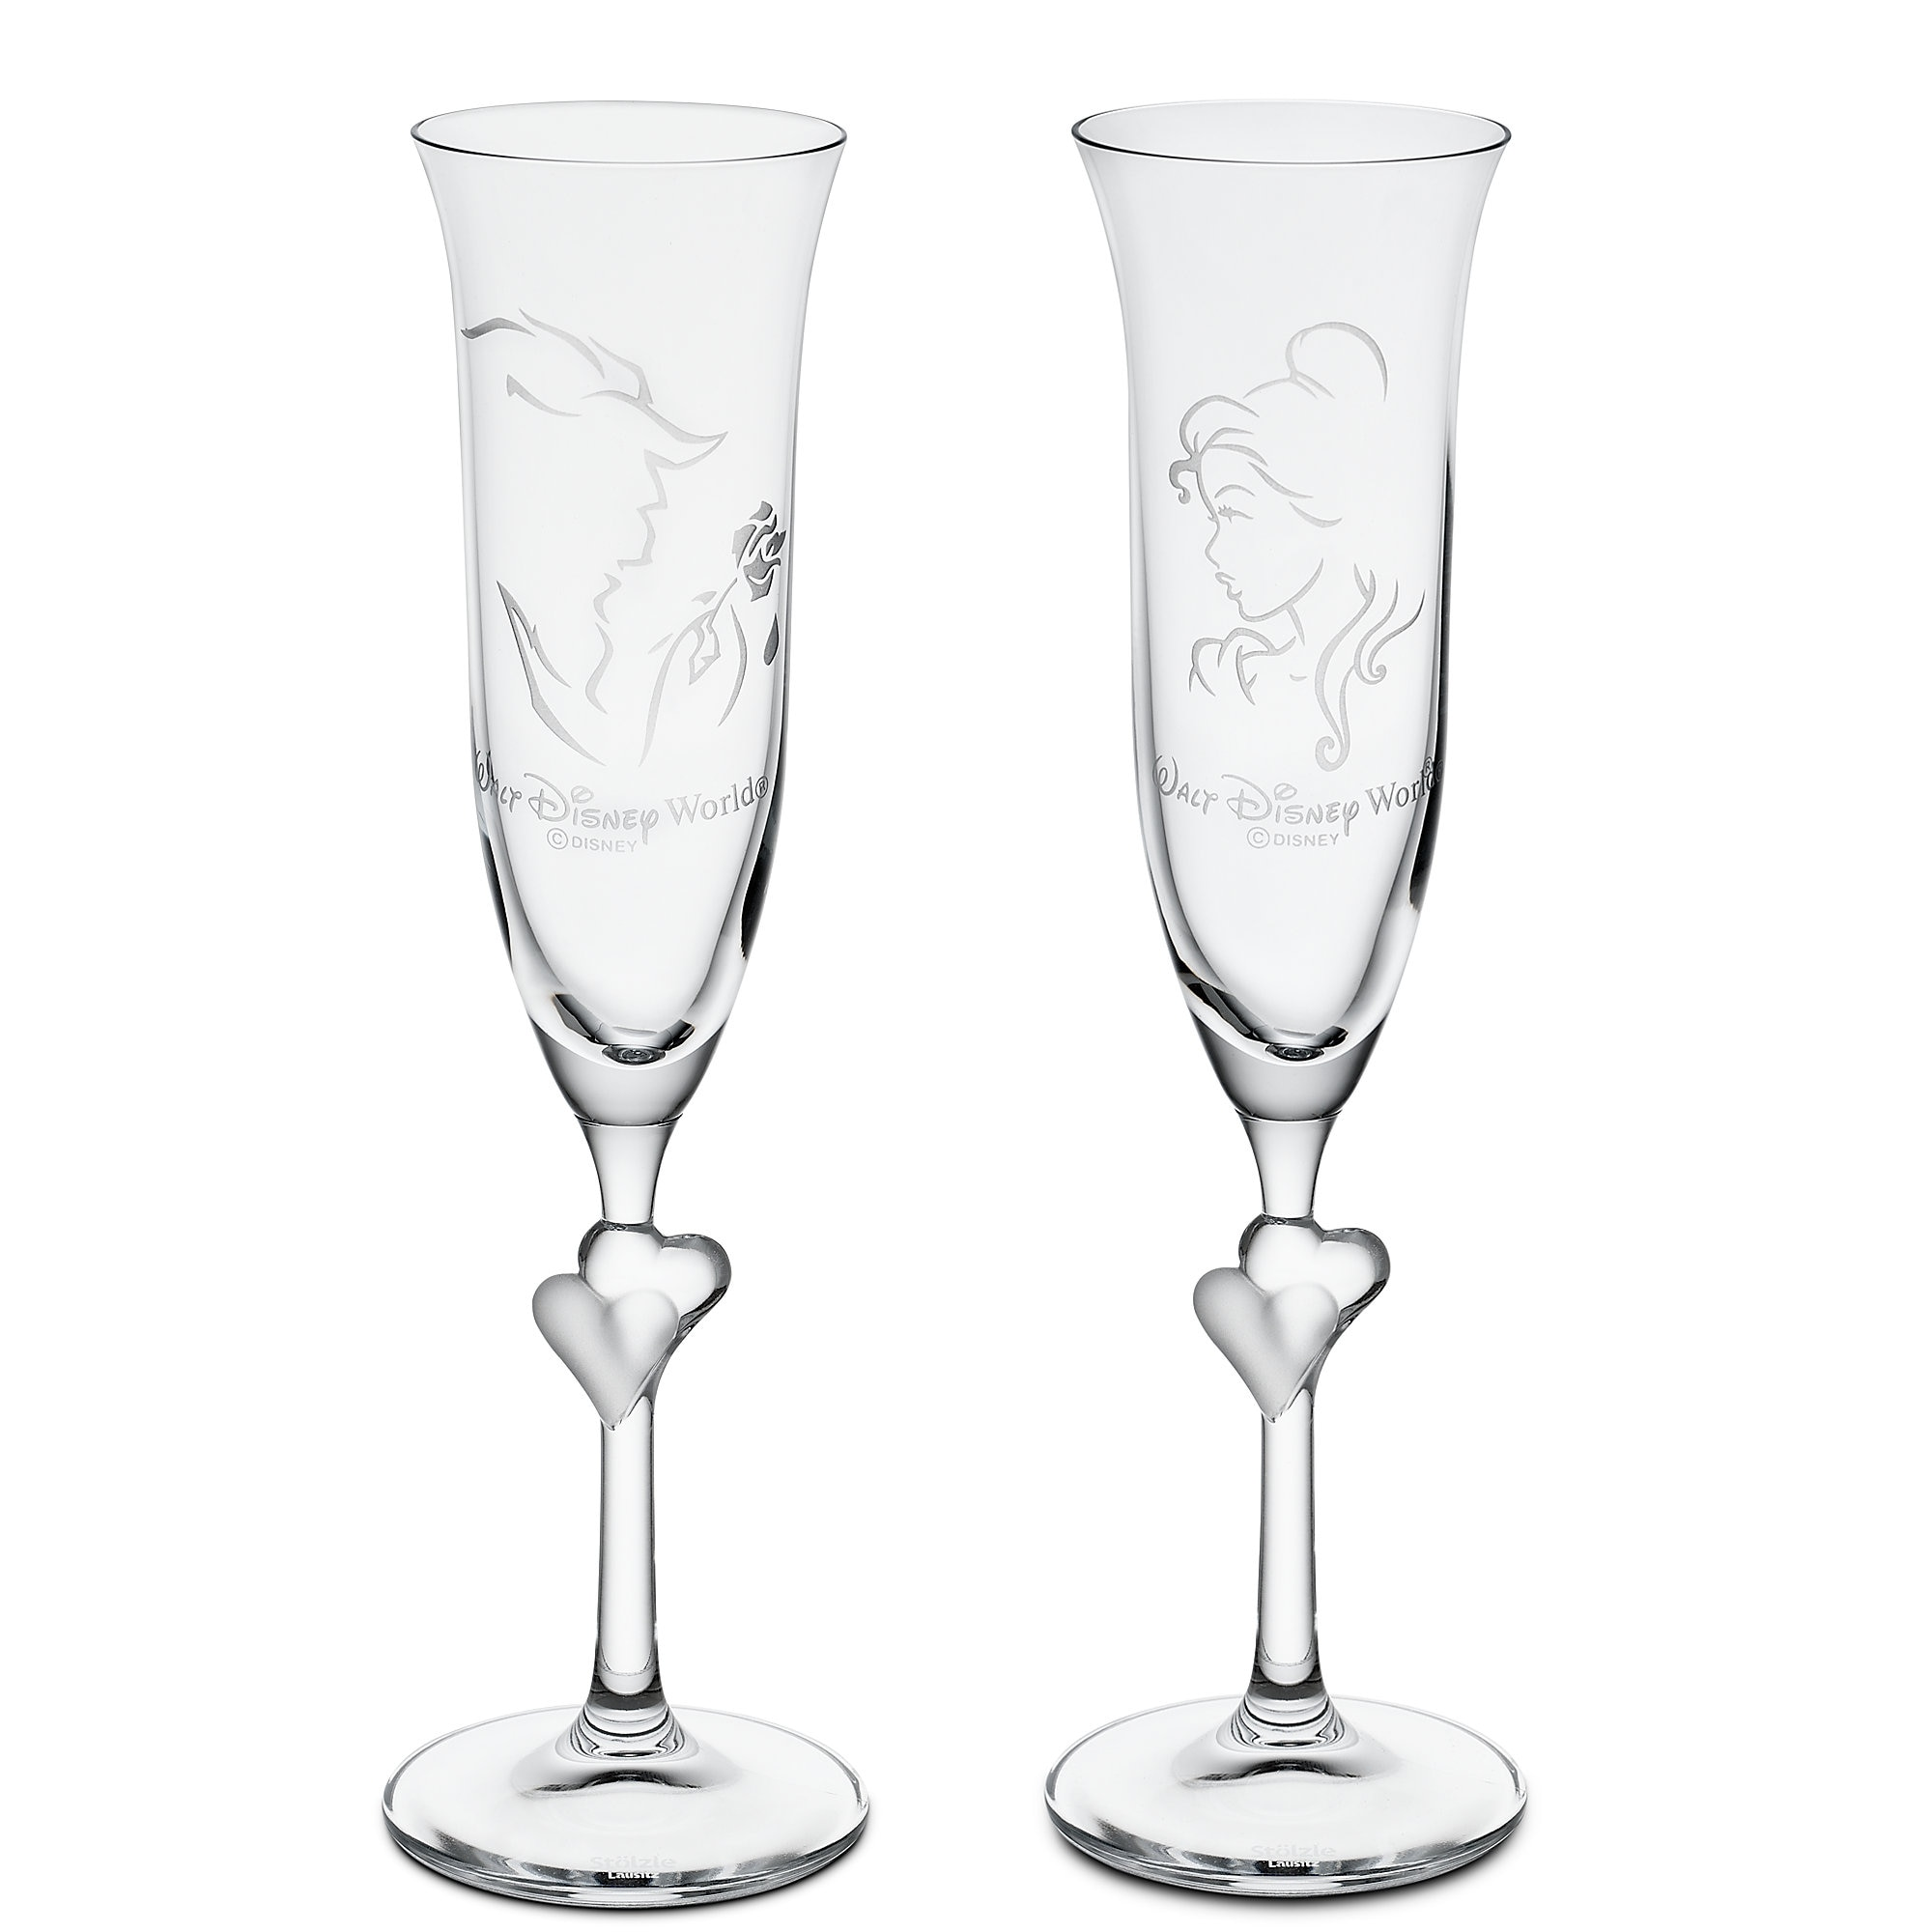 Beauty and the Beast Glass Flute Set by Arribas - Personalizable